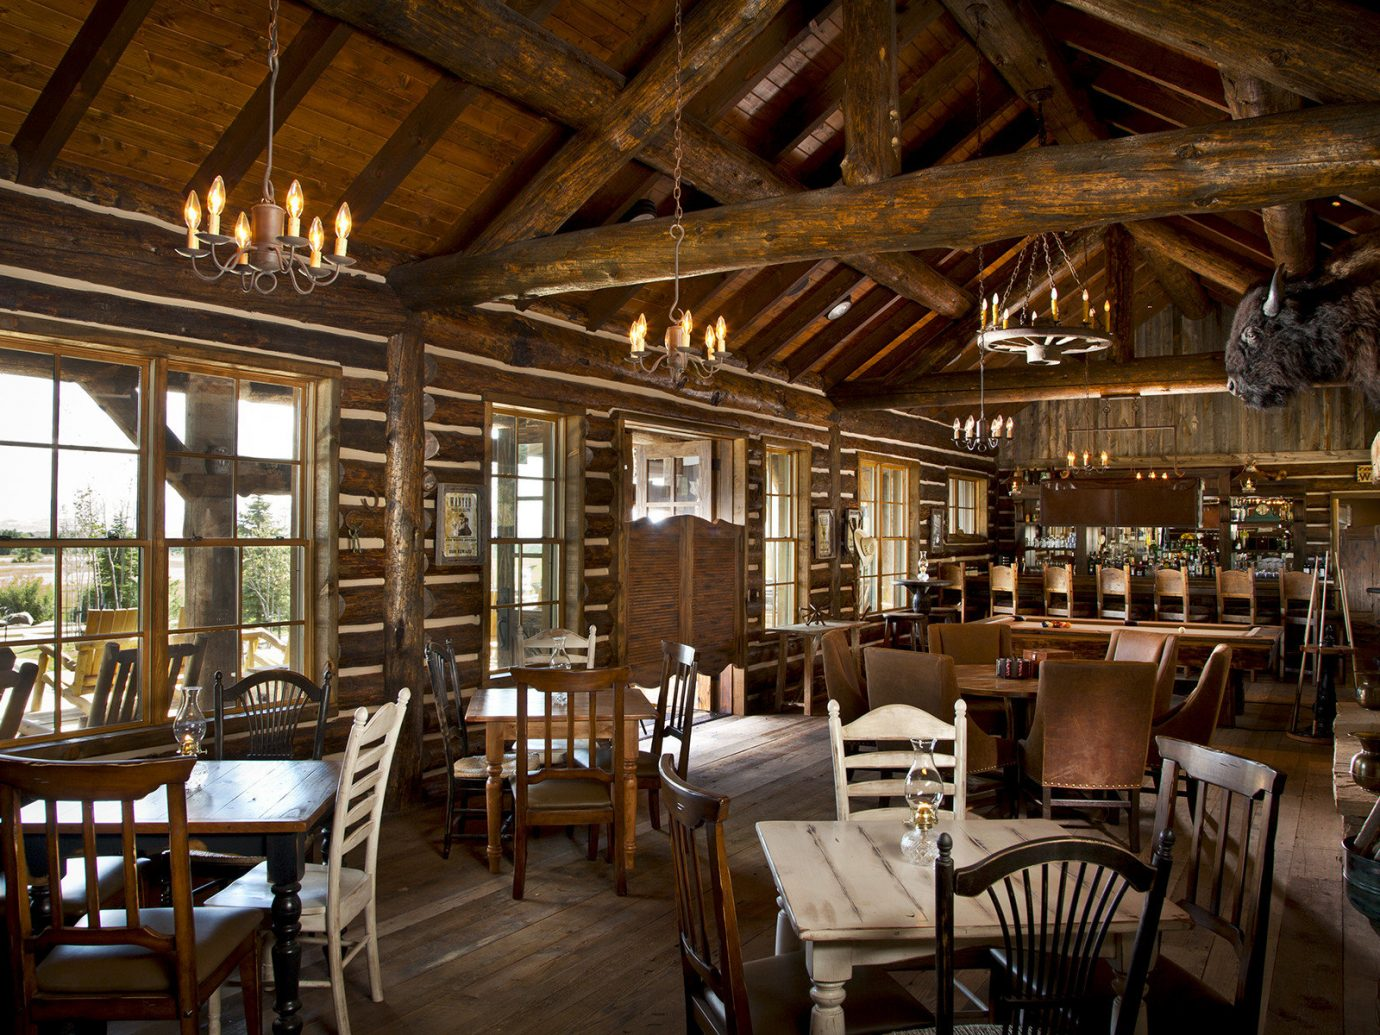 Outdoors + Adventure Trip Ideas indoor table chair ceiling floor room Dining window restaurant estate tavern furniture interior design wood cottage farmhouse area set dining room several dining table